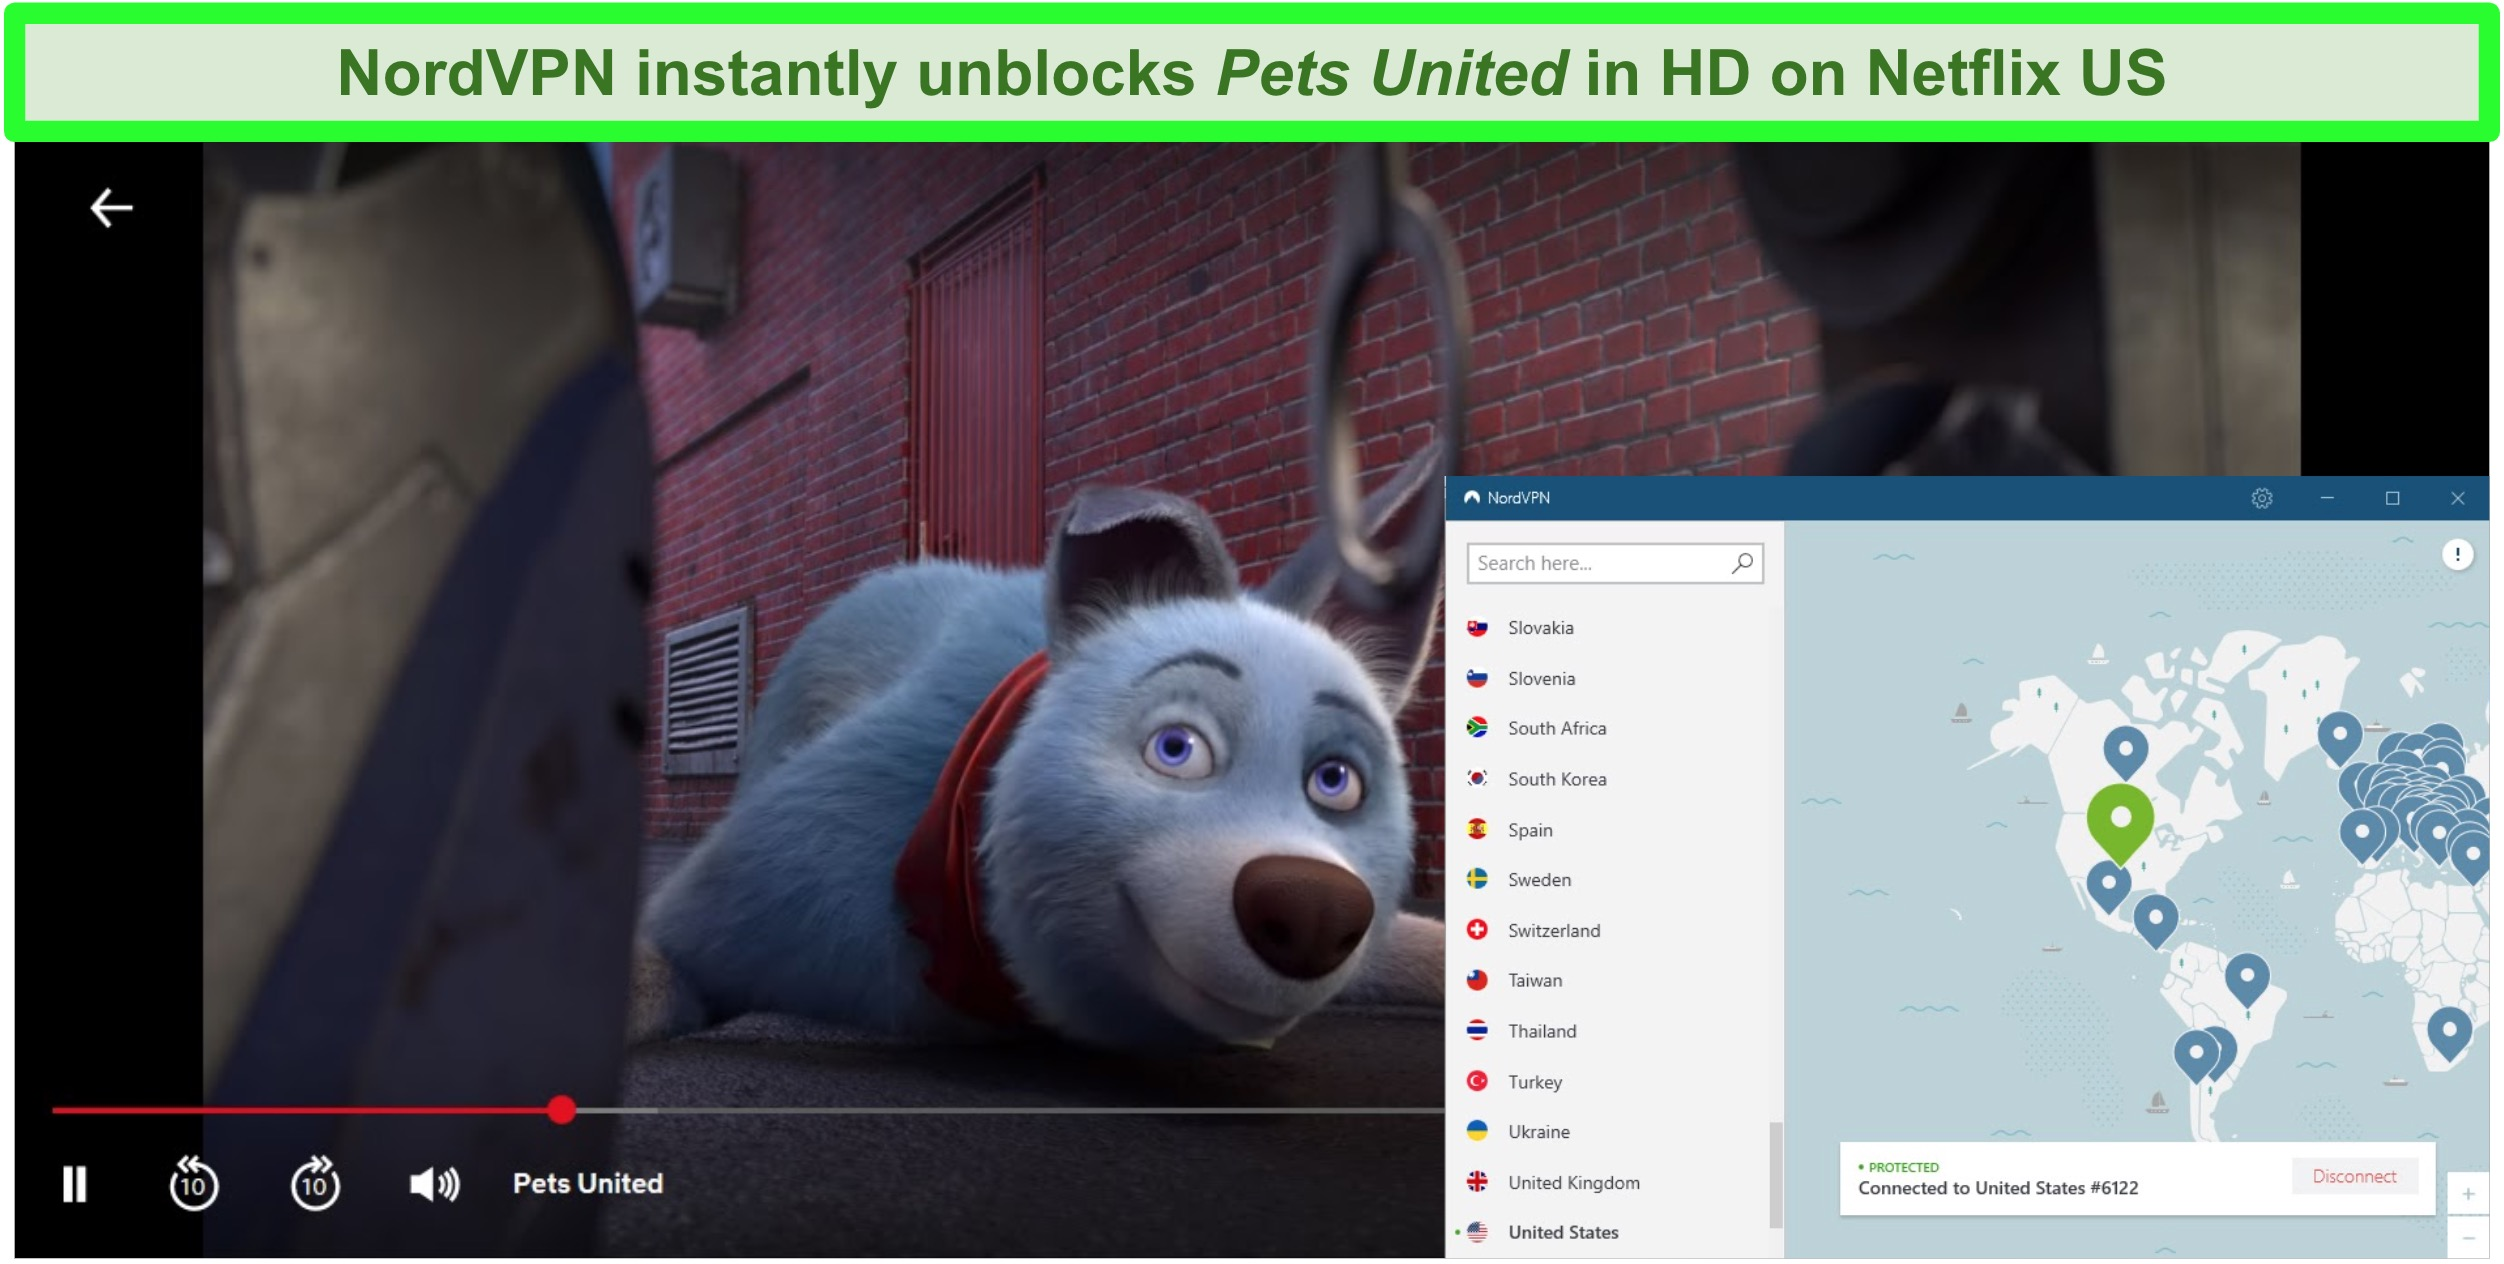 Screenshot of Pets United unblocked on Netflix while NordVPN is connected to a server in the US